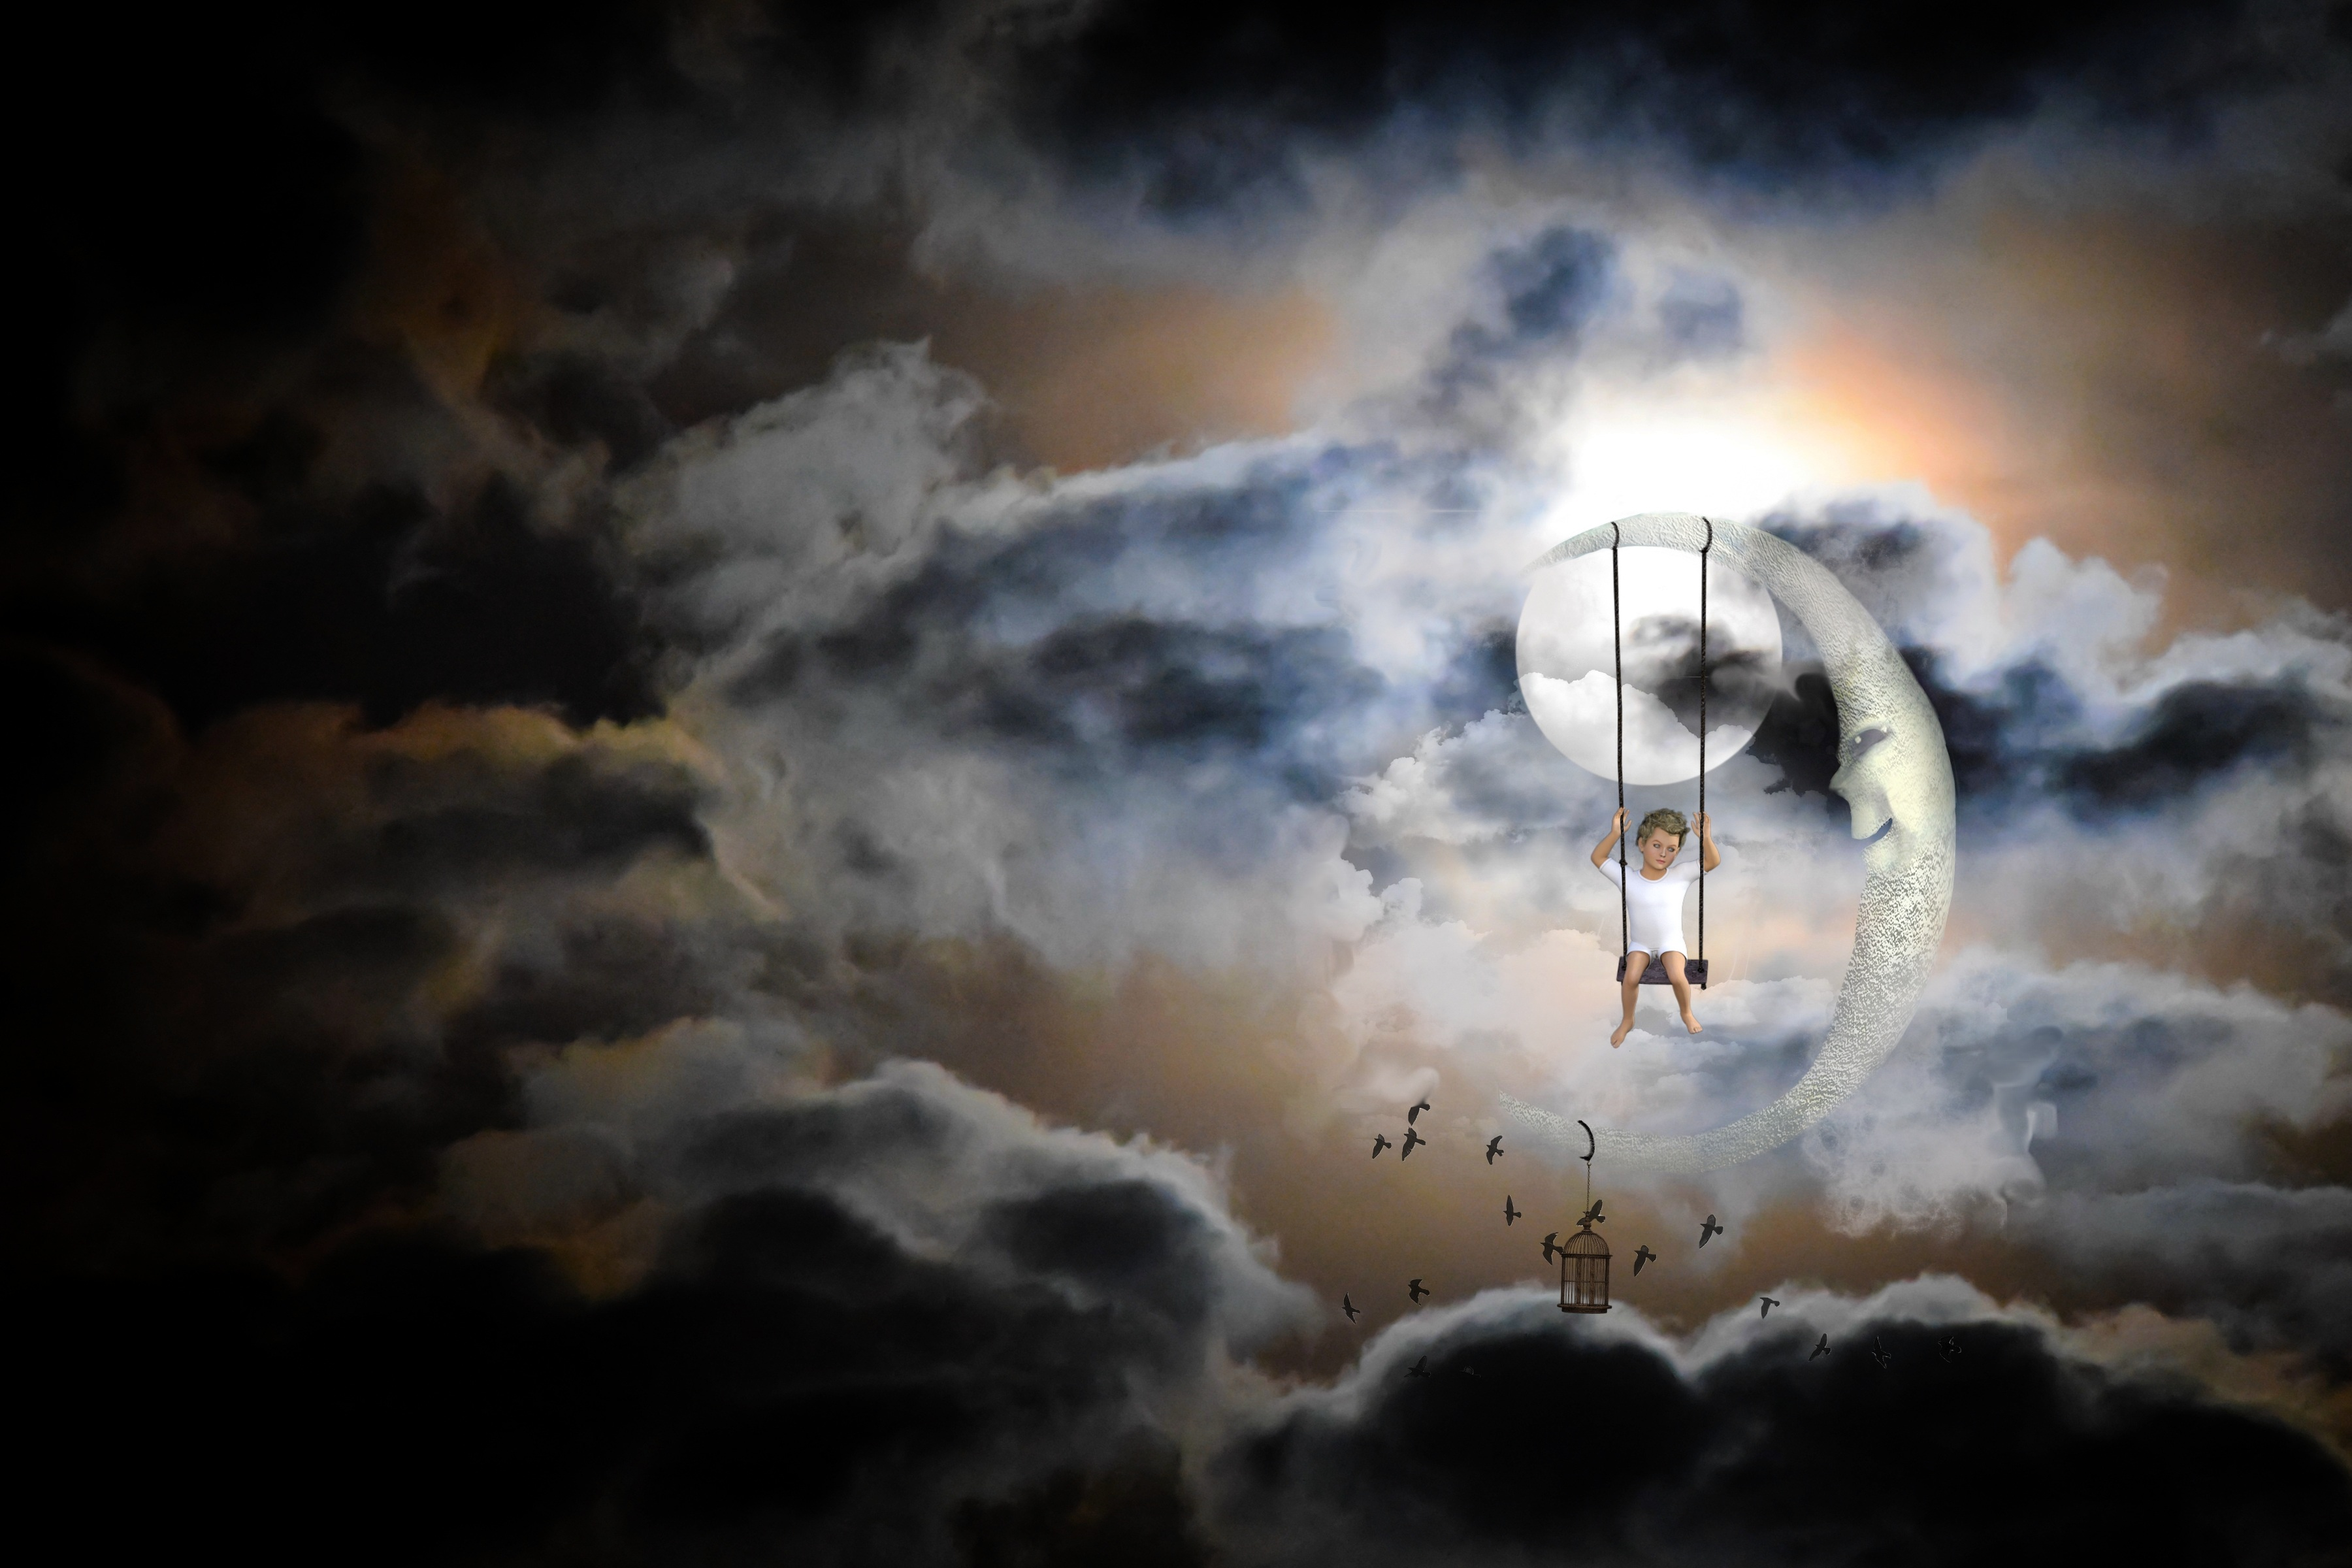 Swinging in front of the moon, Art, Child, Clouds, Graphic, HQ Photo